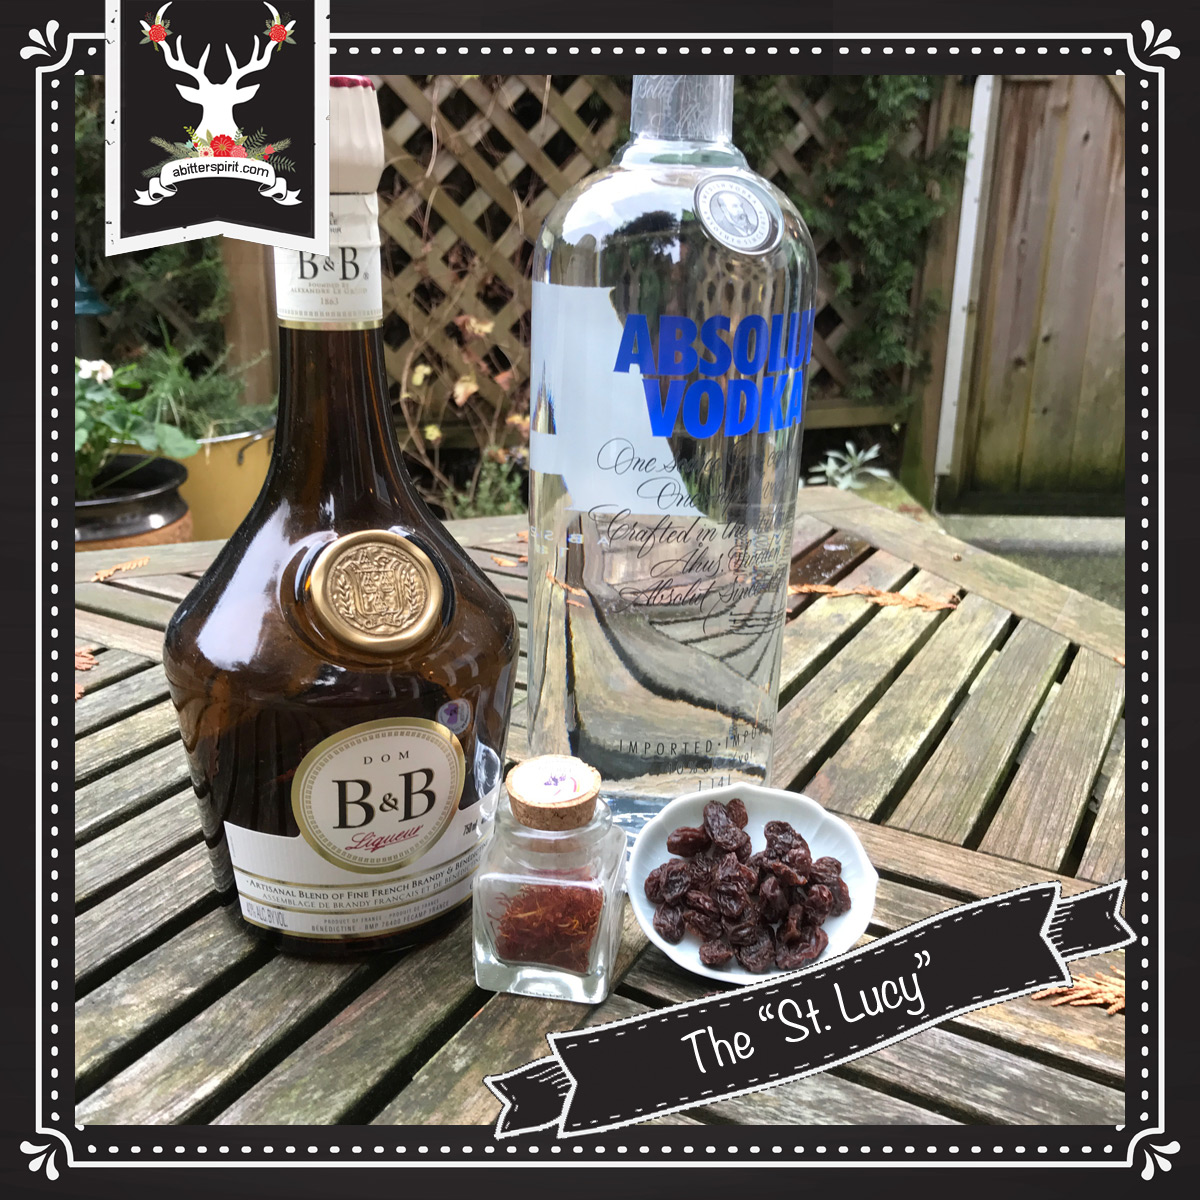 The 'St. Lucy' Cocktail Ingredients - ABitterSpirit.com